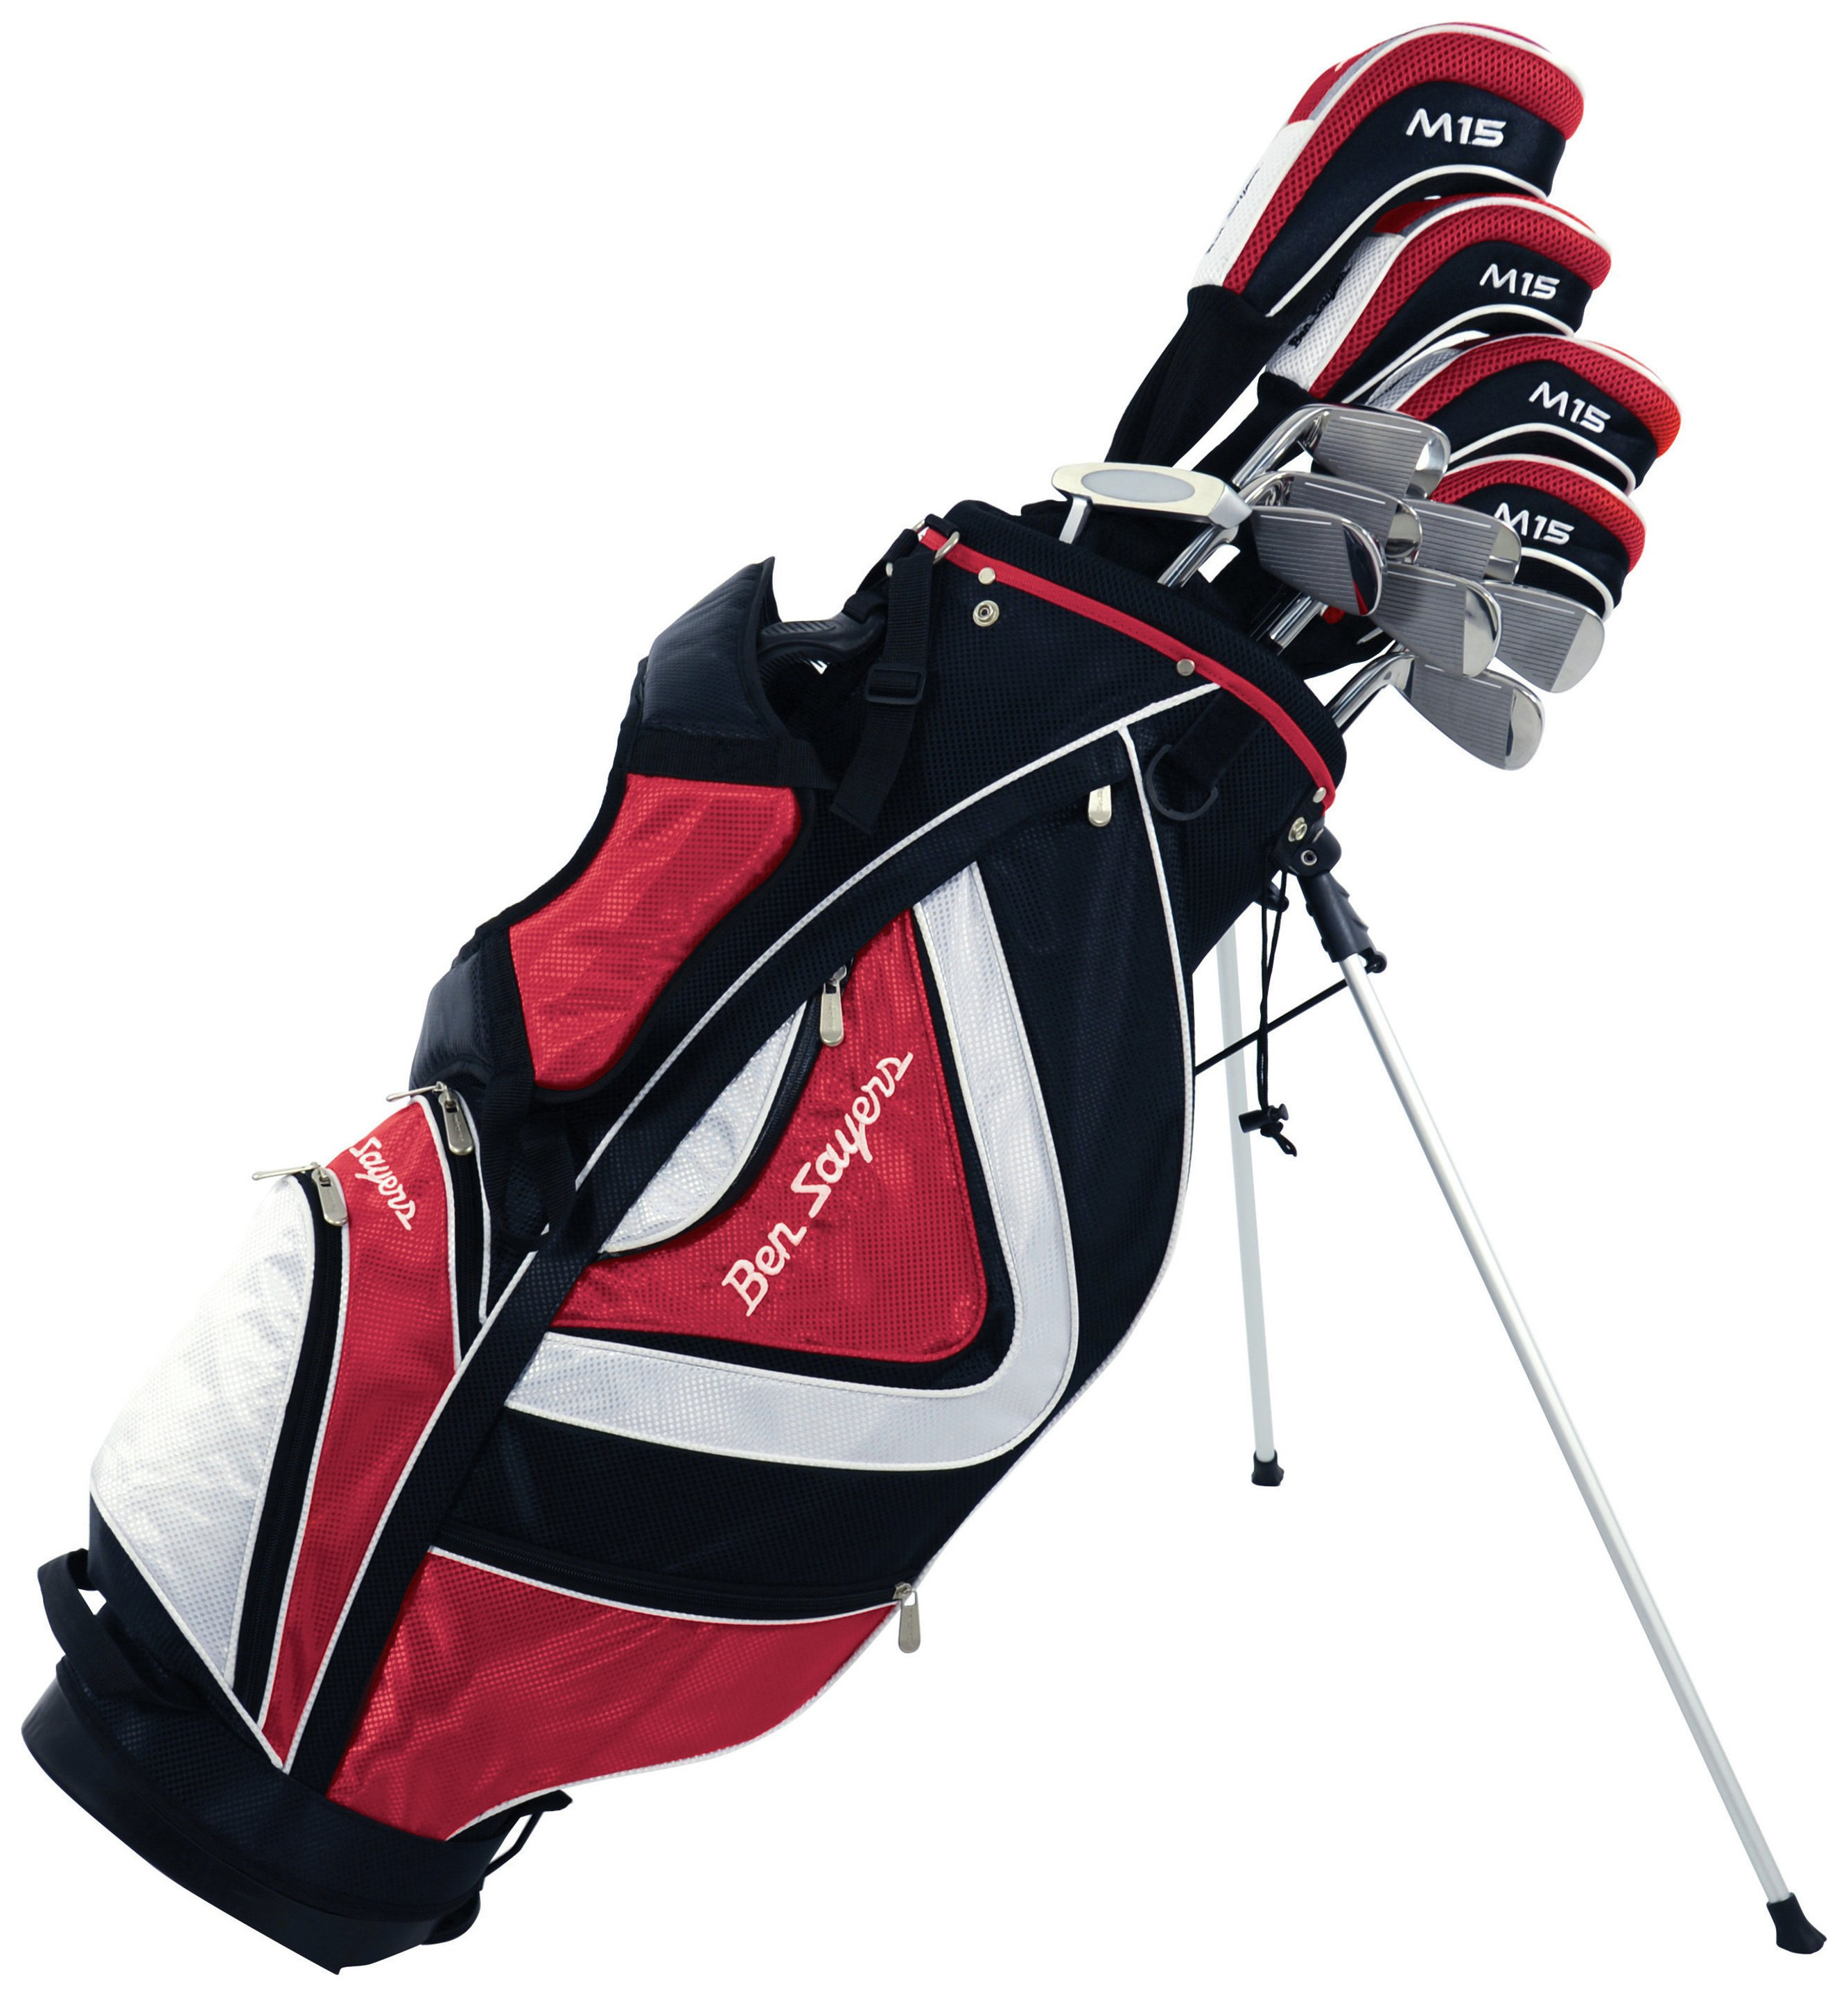 Driving gloves argos - Ben Sayers Golf M15 Men S Package Set